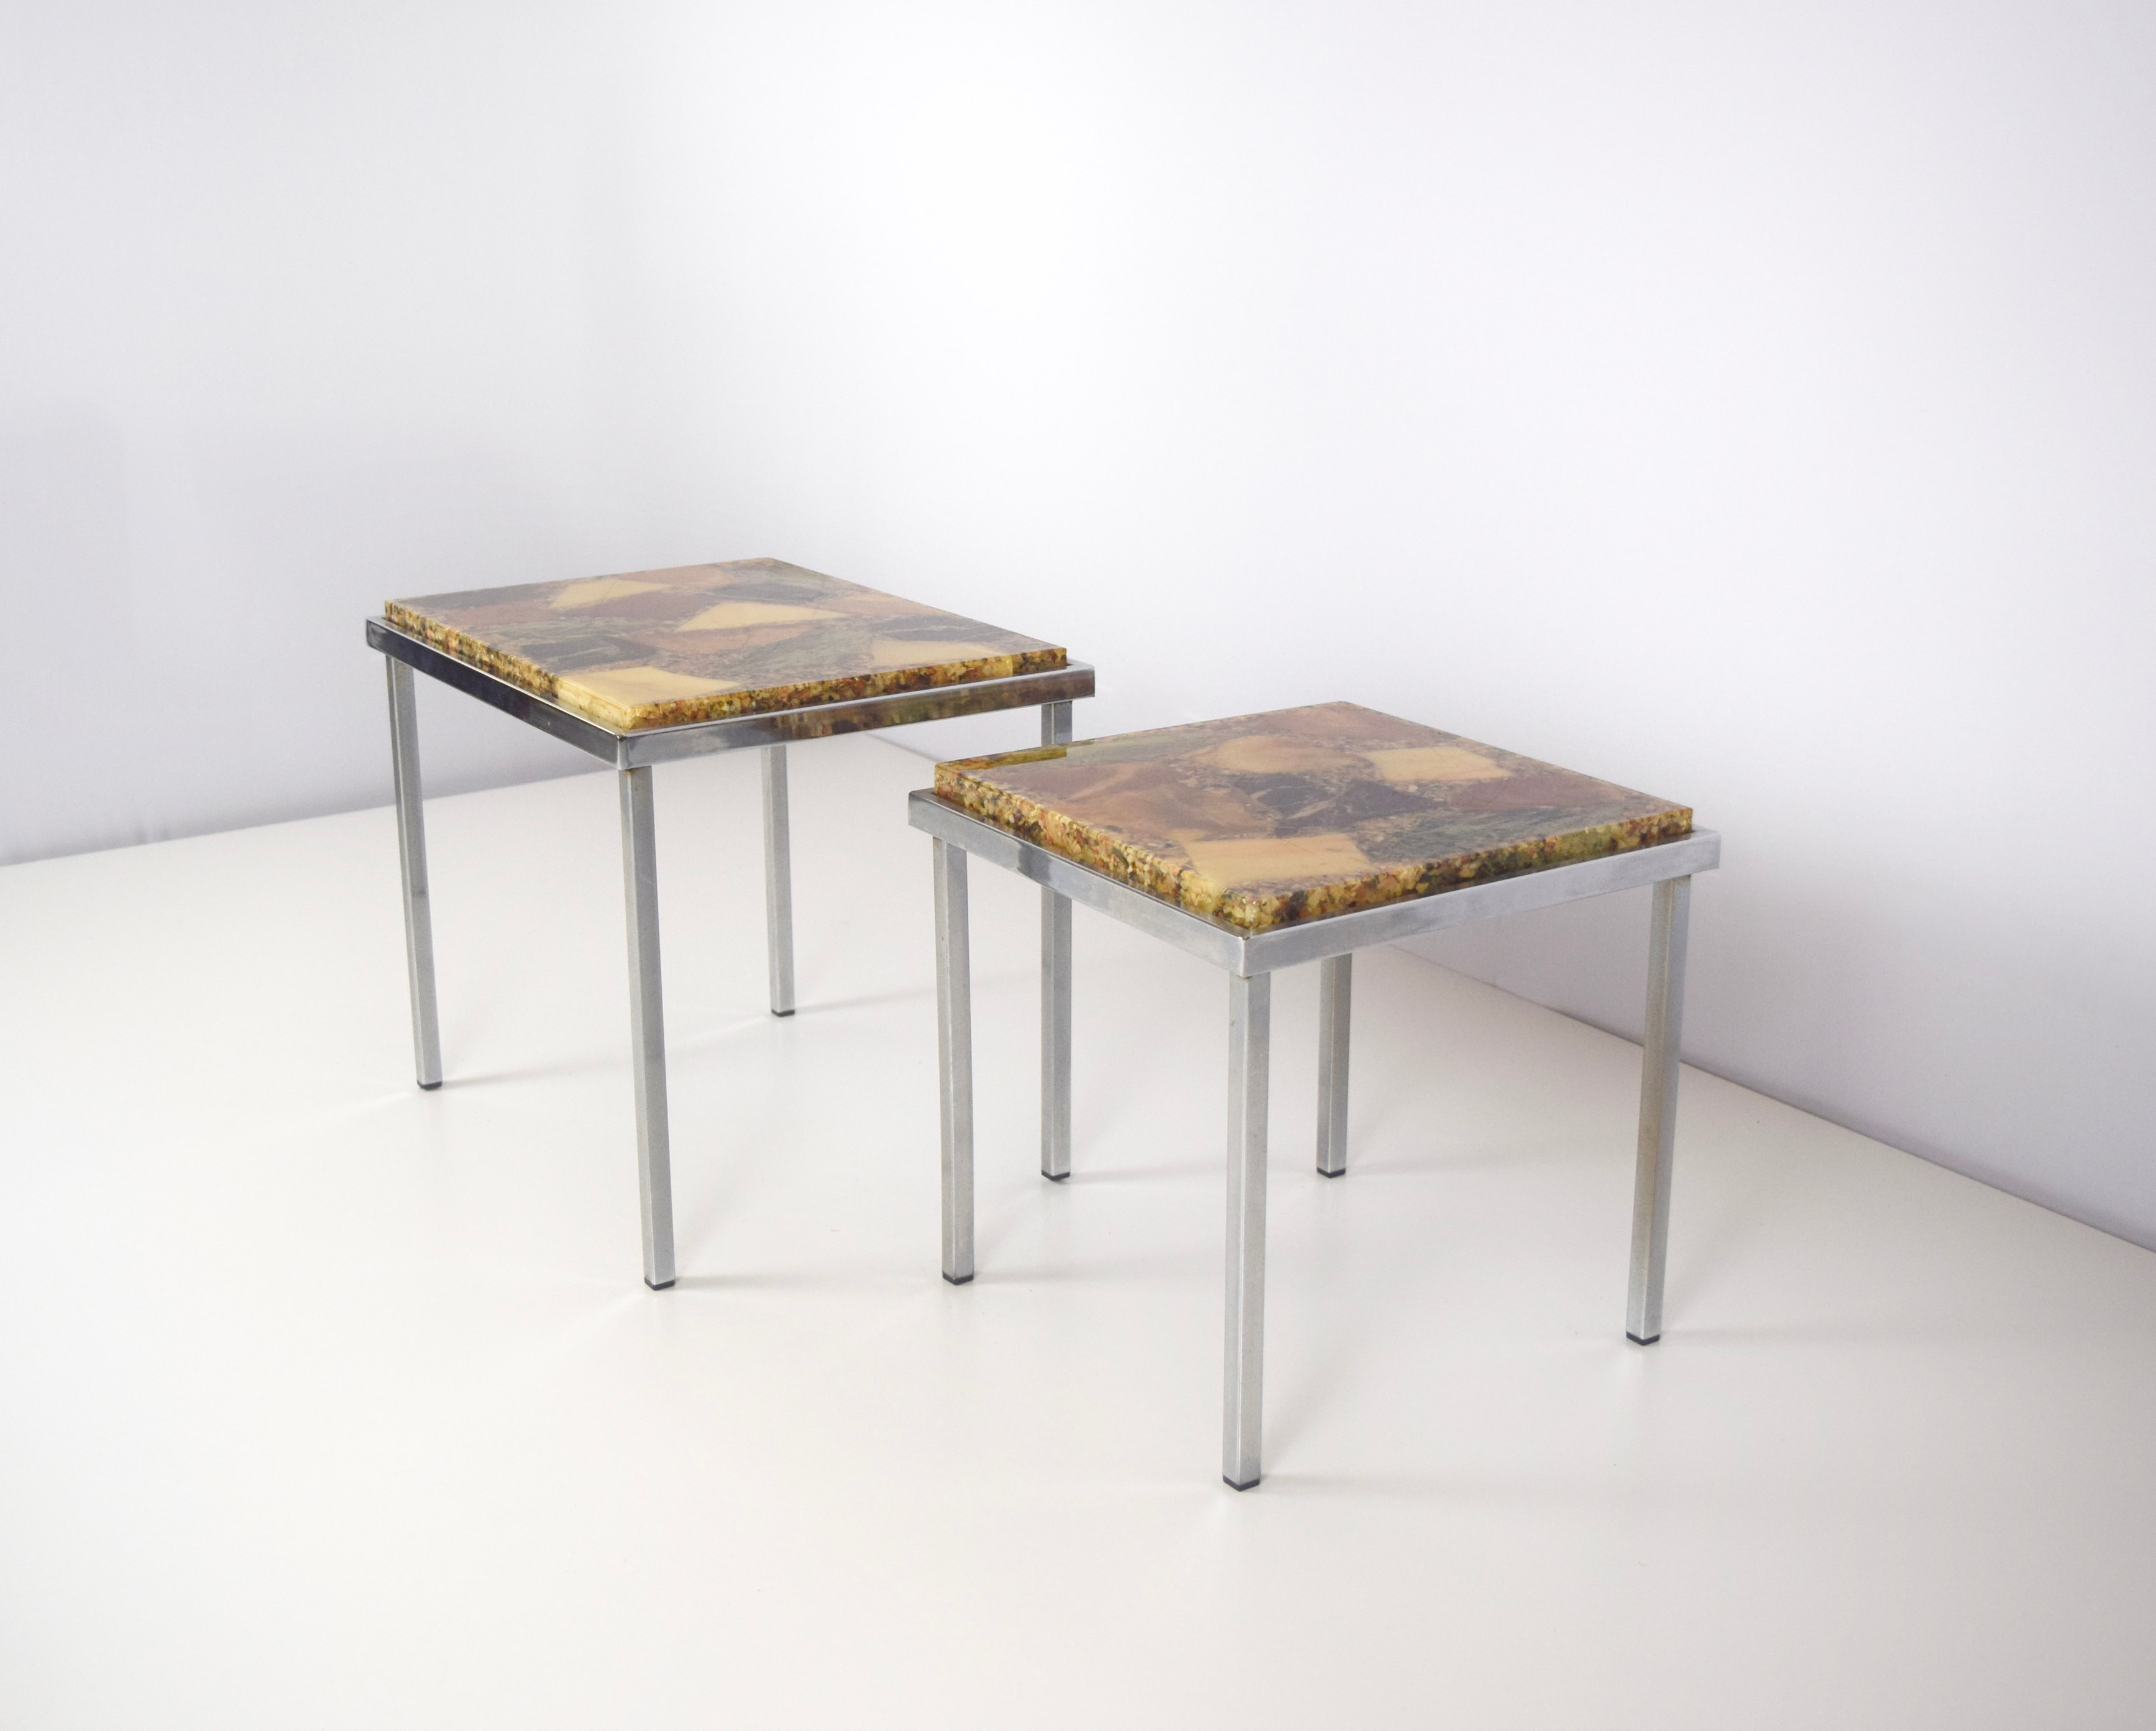 Set of Two Coffee Tables in Chrome and Epoxy